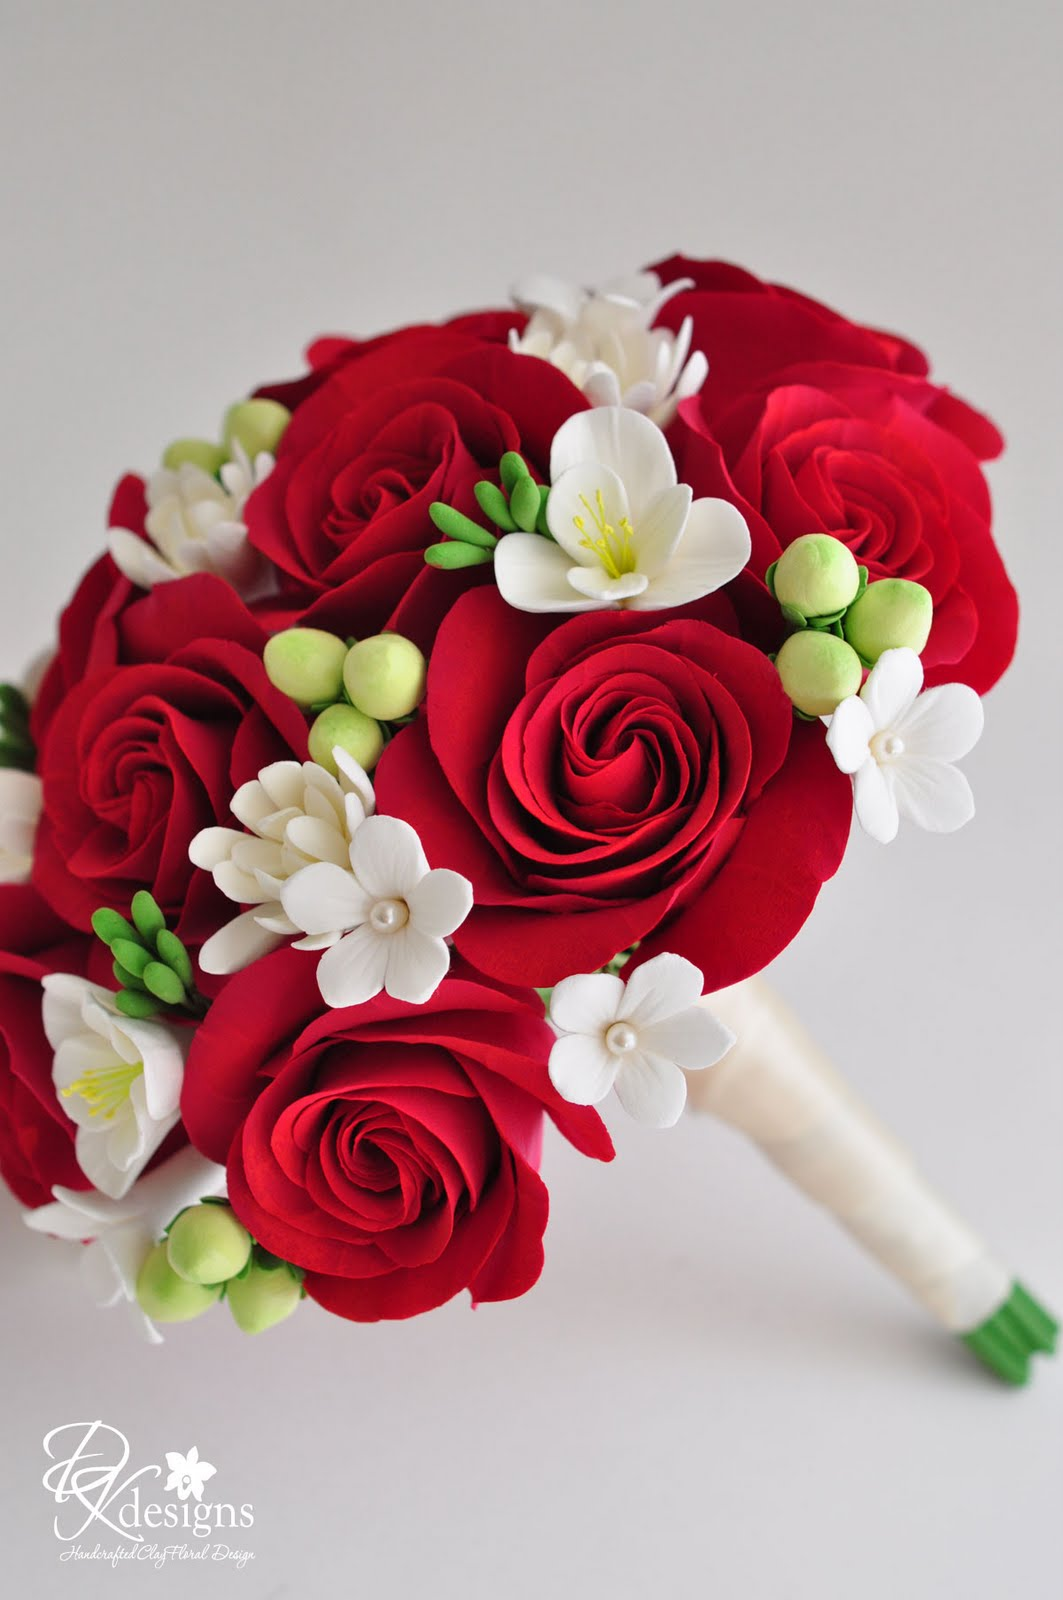 Red roses freesia stephanotis tuberose and hipericum berry red roses freesia stephanotis tuberose and hipericum berry bouquet and boutonniere izmirmasajfo Image collections